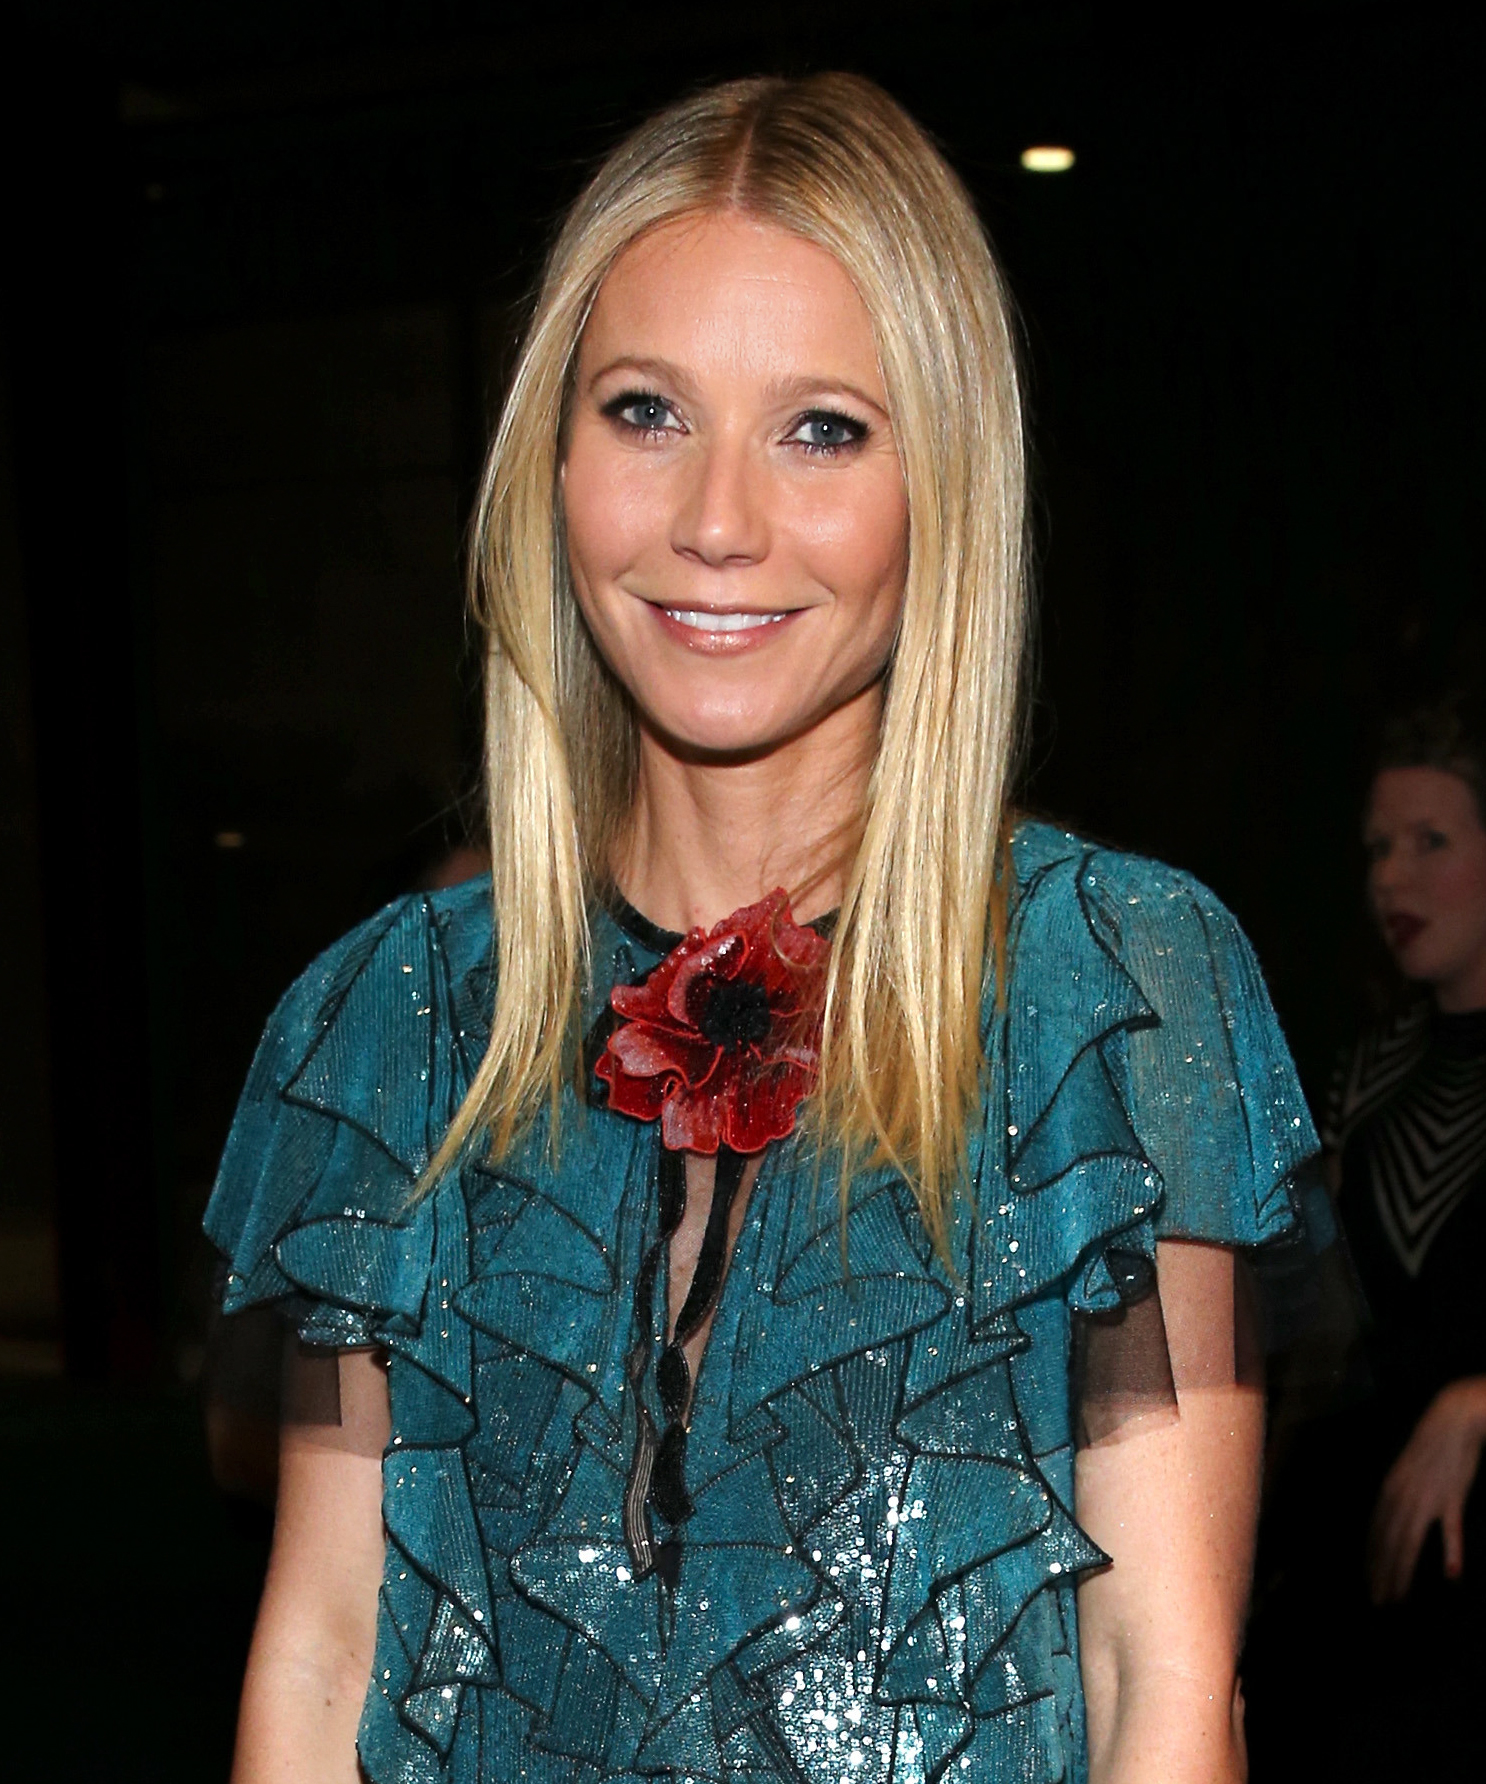 51340c0f4b7 Actress Gwyneth Paltrow attends LACMA 2015 Art+Film Gala Honoring James  Turrell and Alejandro G